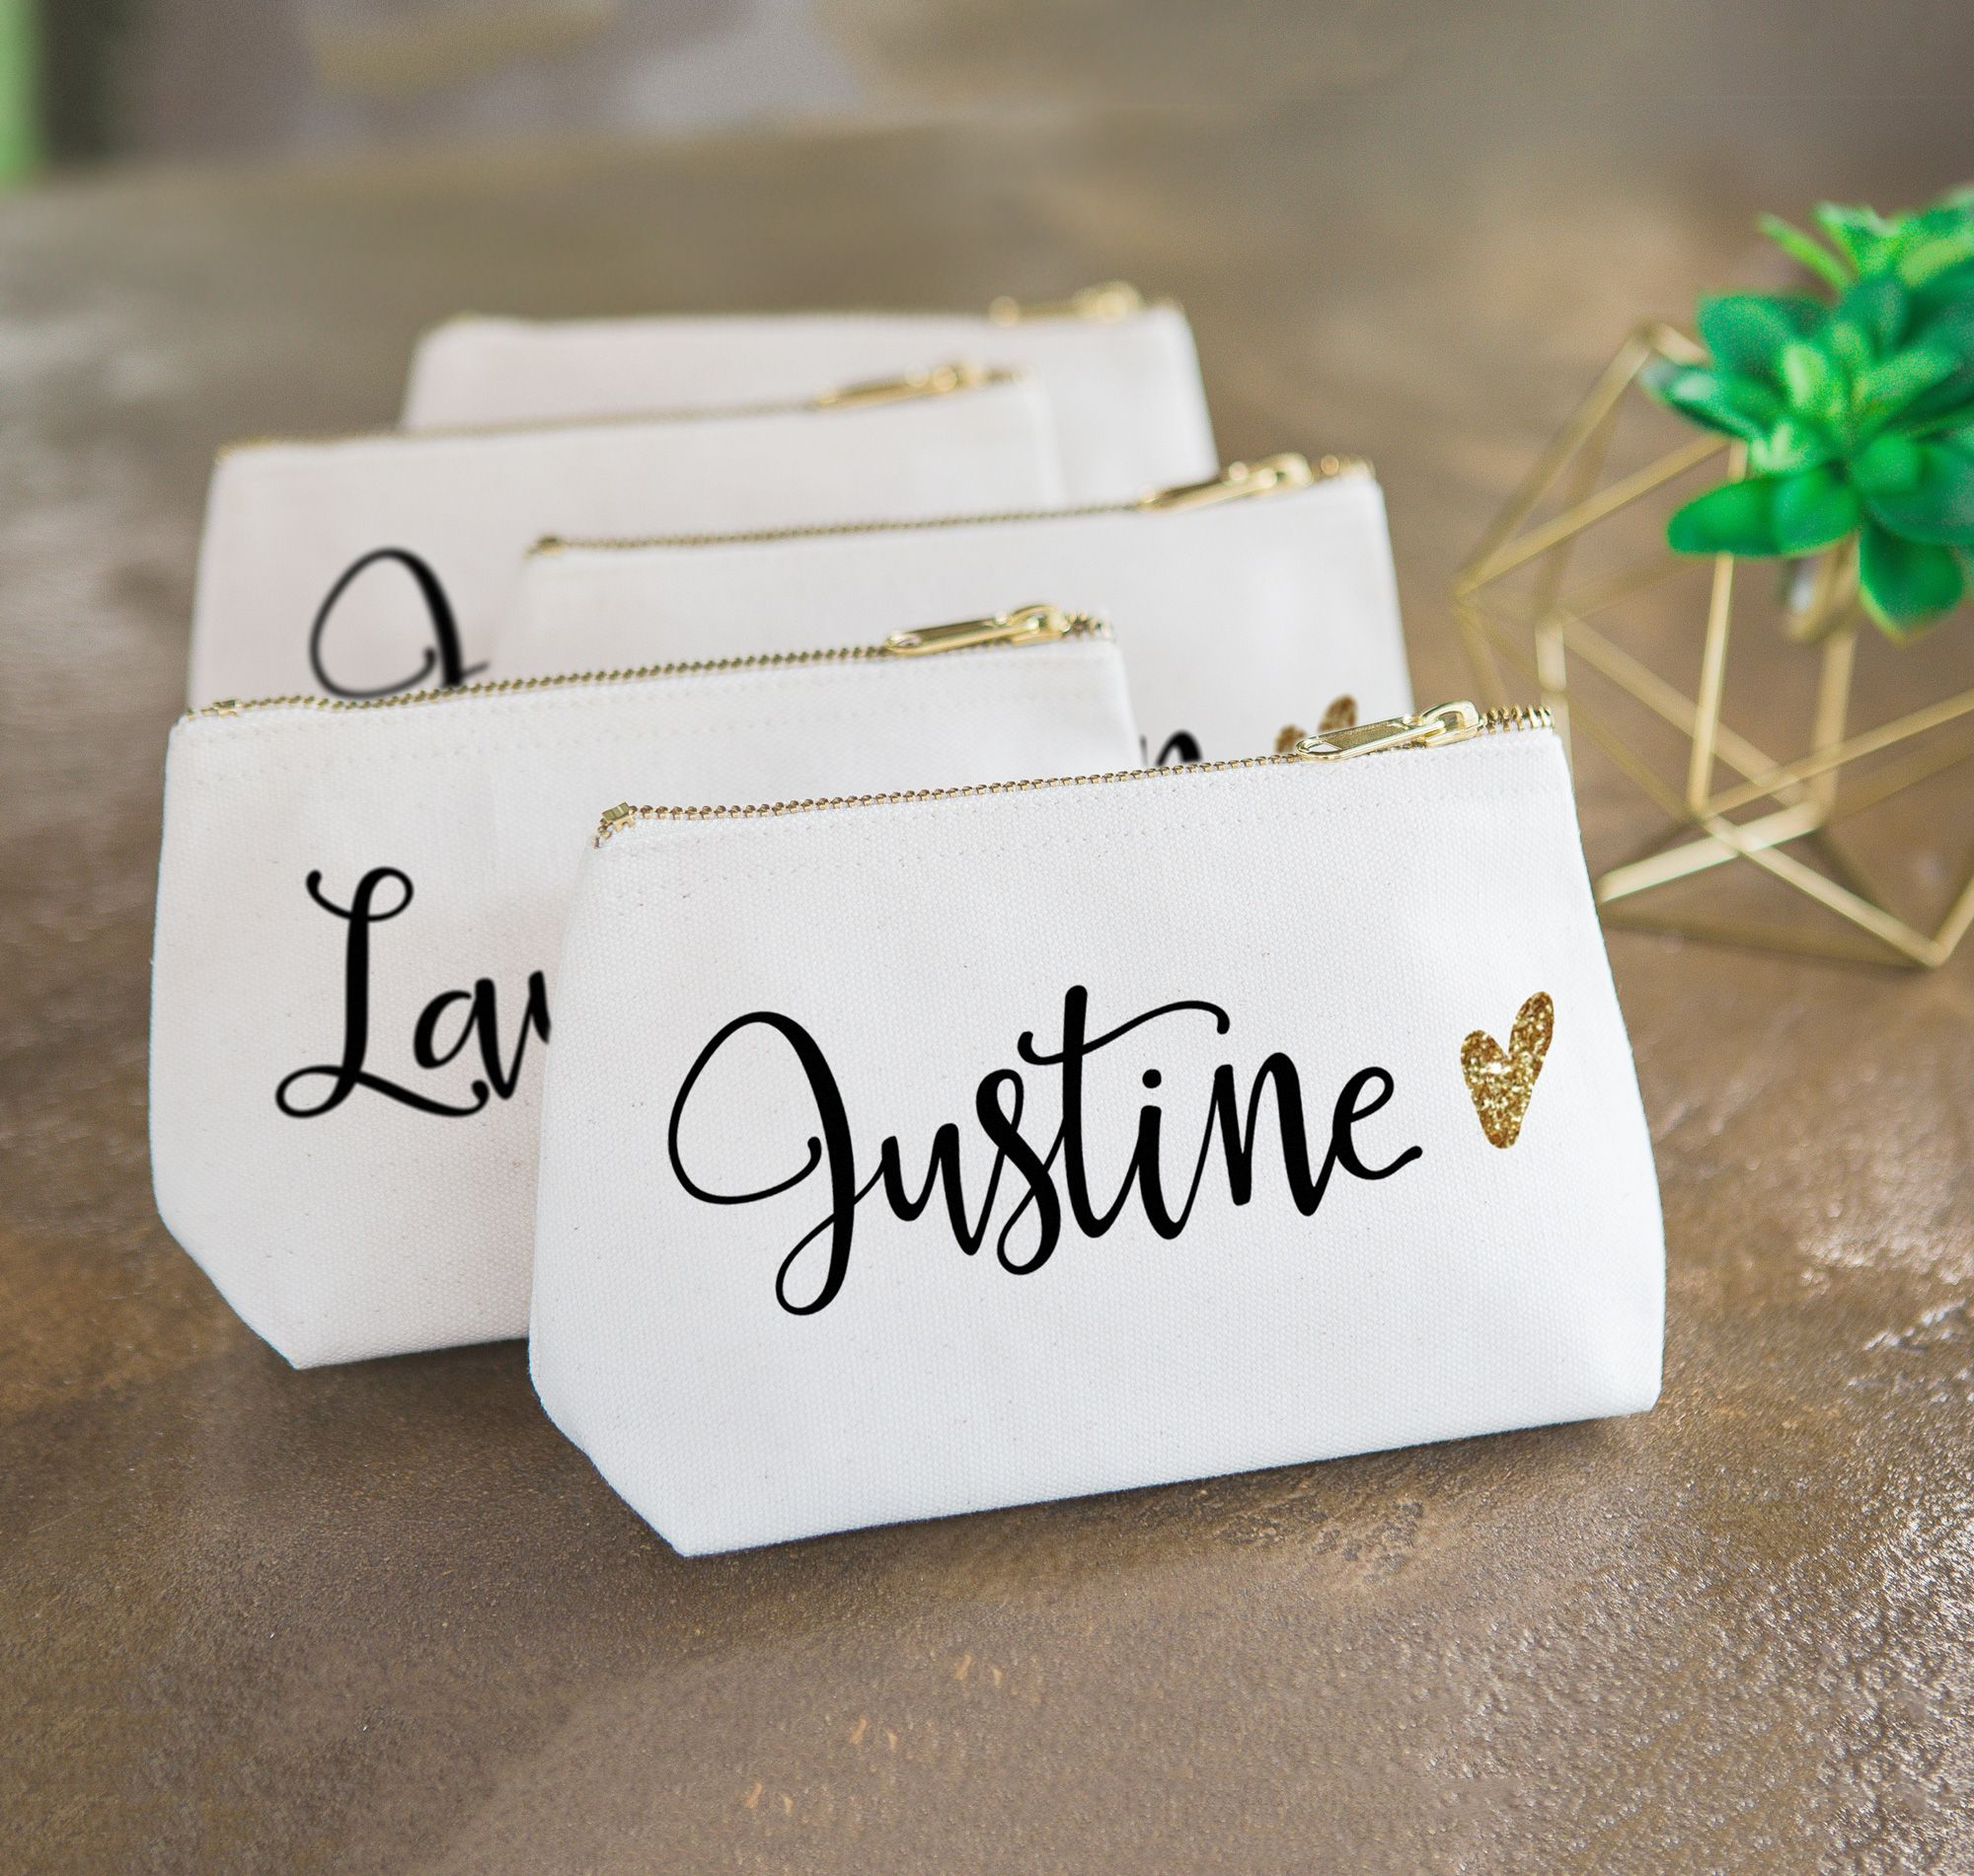 Bridesmaid Gift Ideas Cute Personalized Bags For The Bridal Party